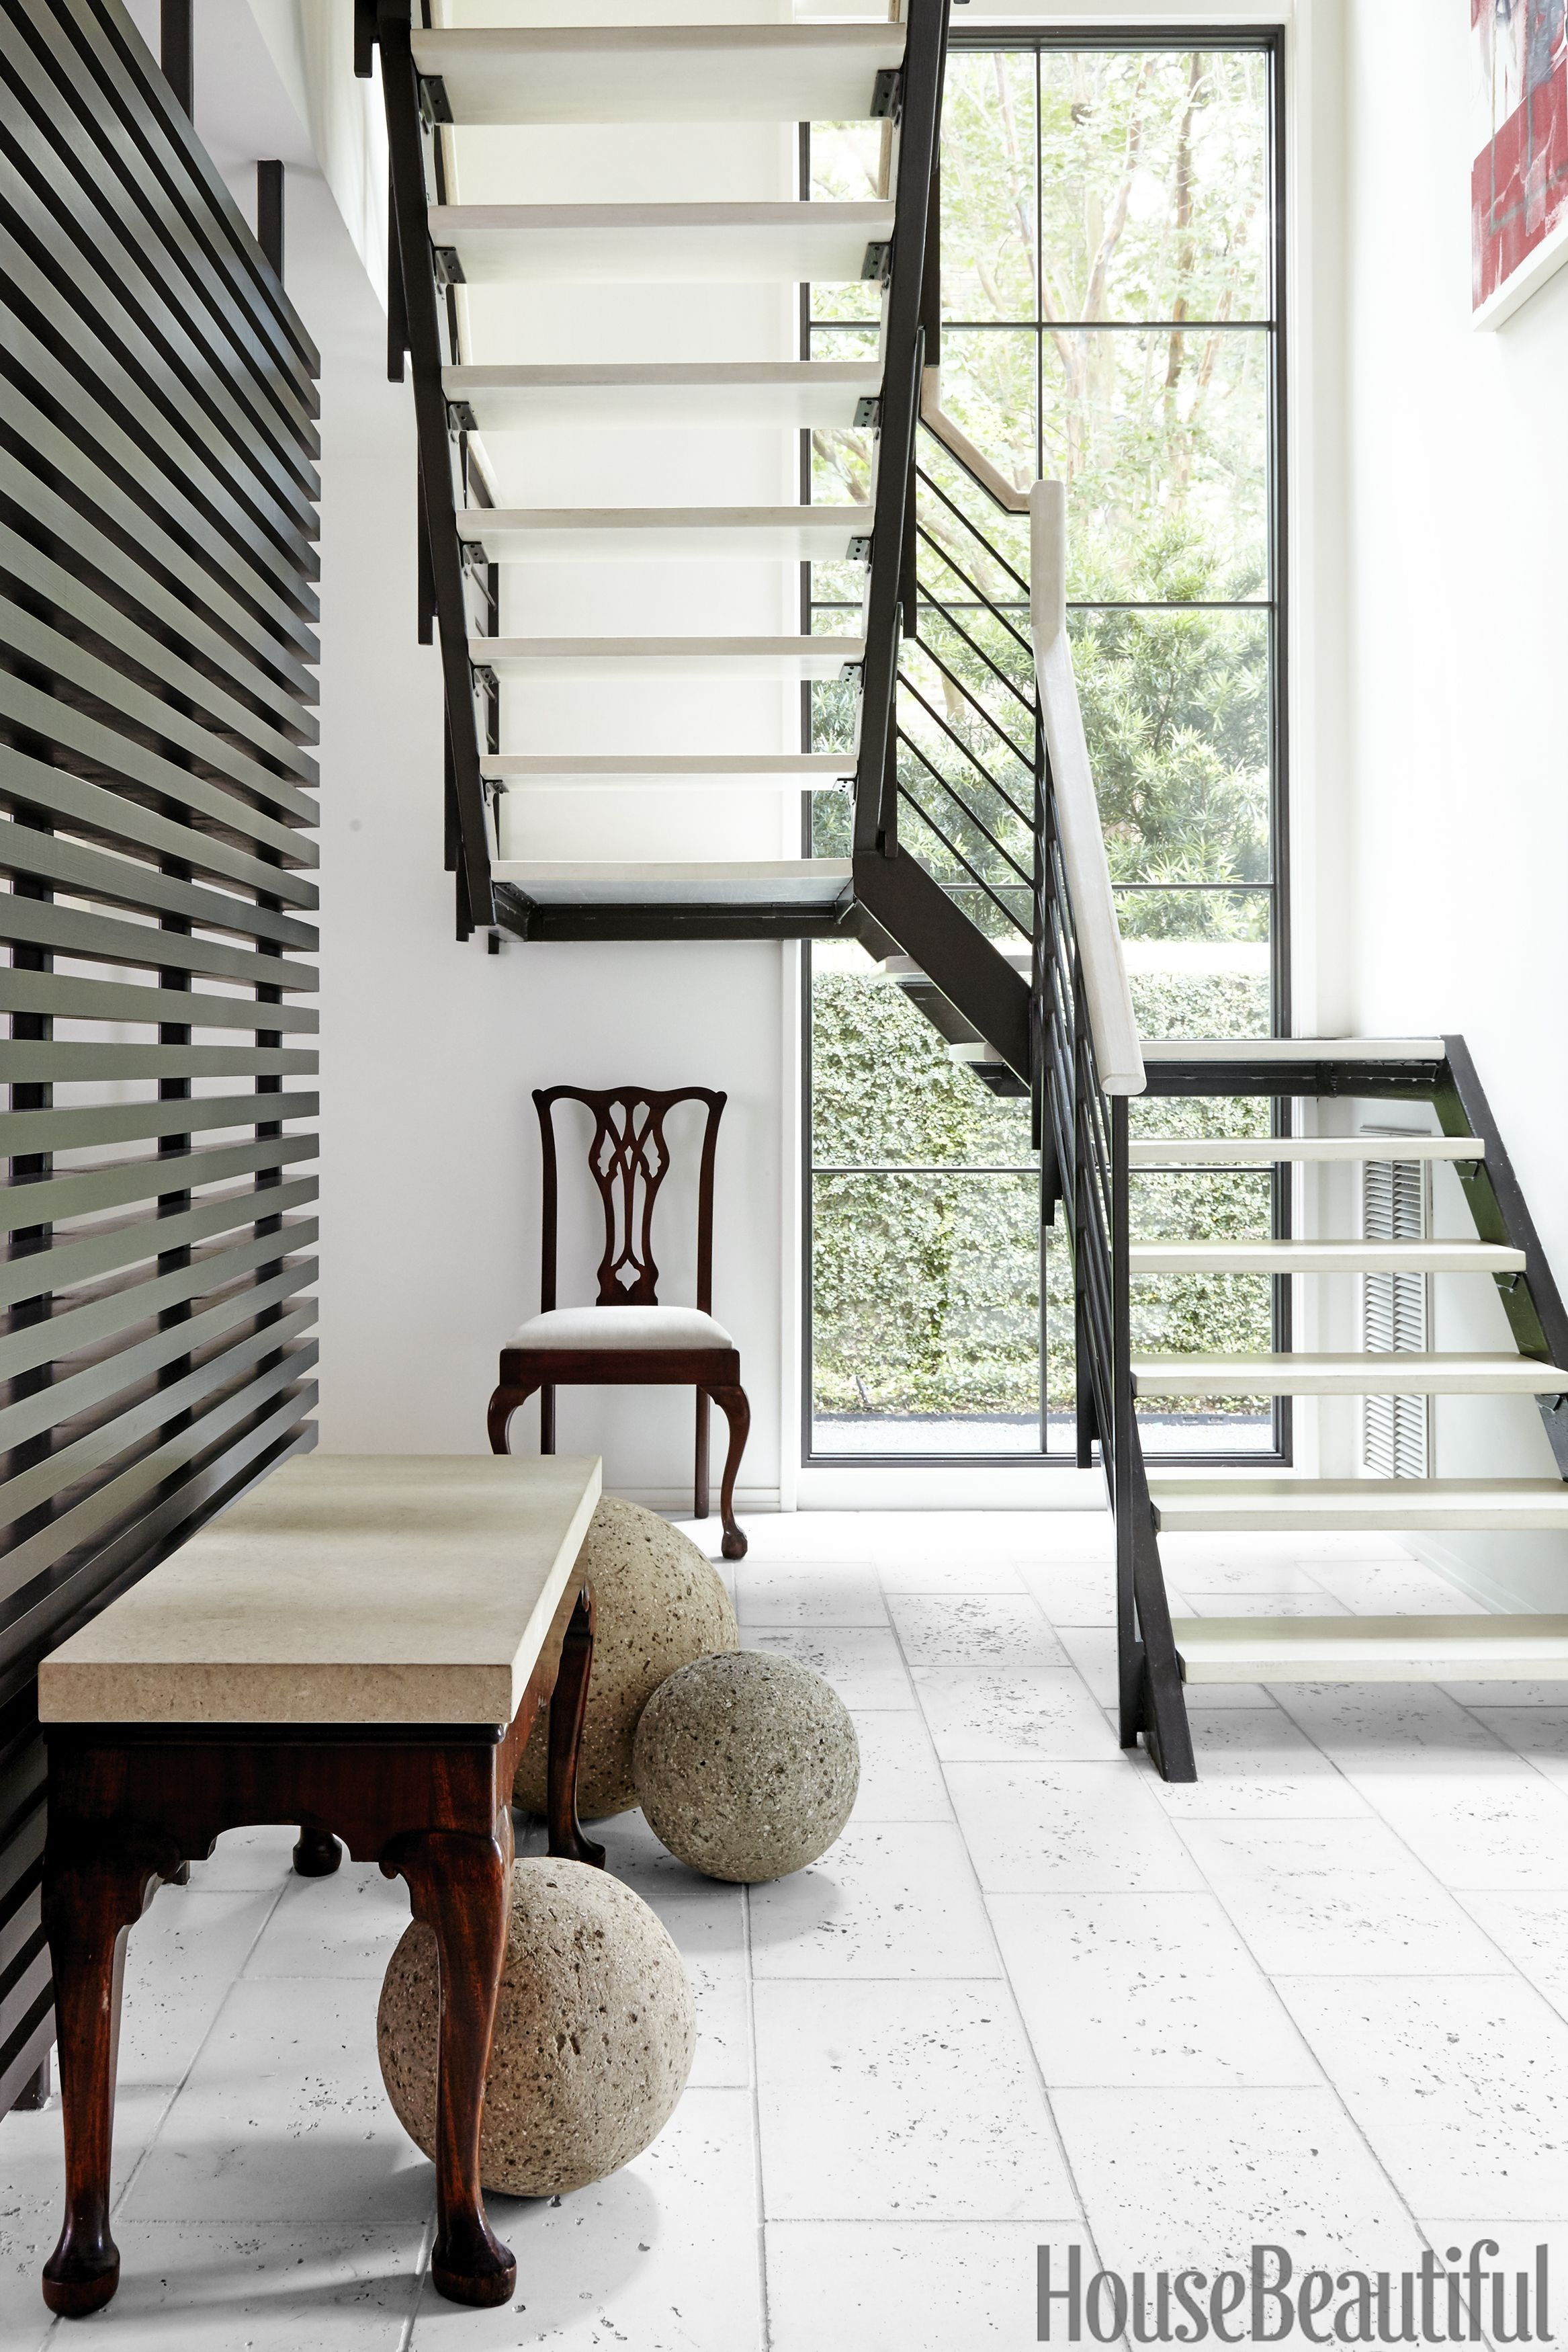 25 Unique Stair Designs Beautiful Stair Ideas For Your House   Steel Staircase Designs For Homes   New Model   Inside   Railing   Balcony   Unique